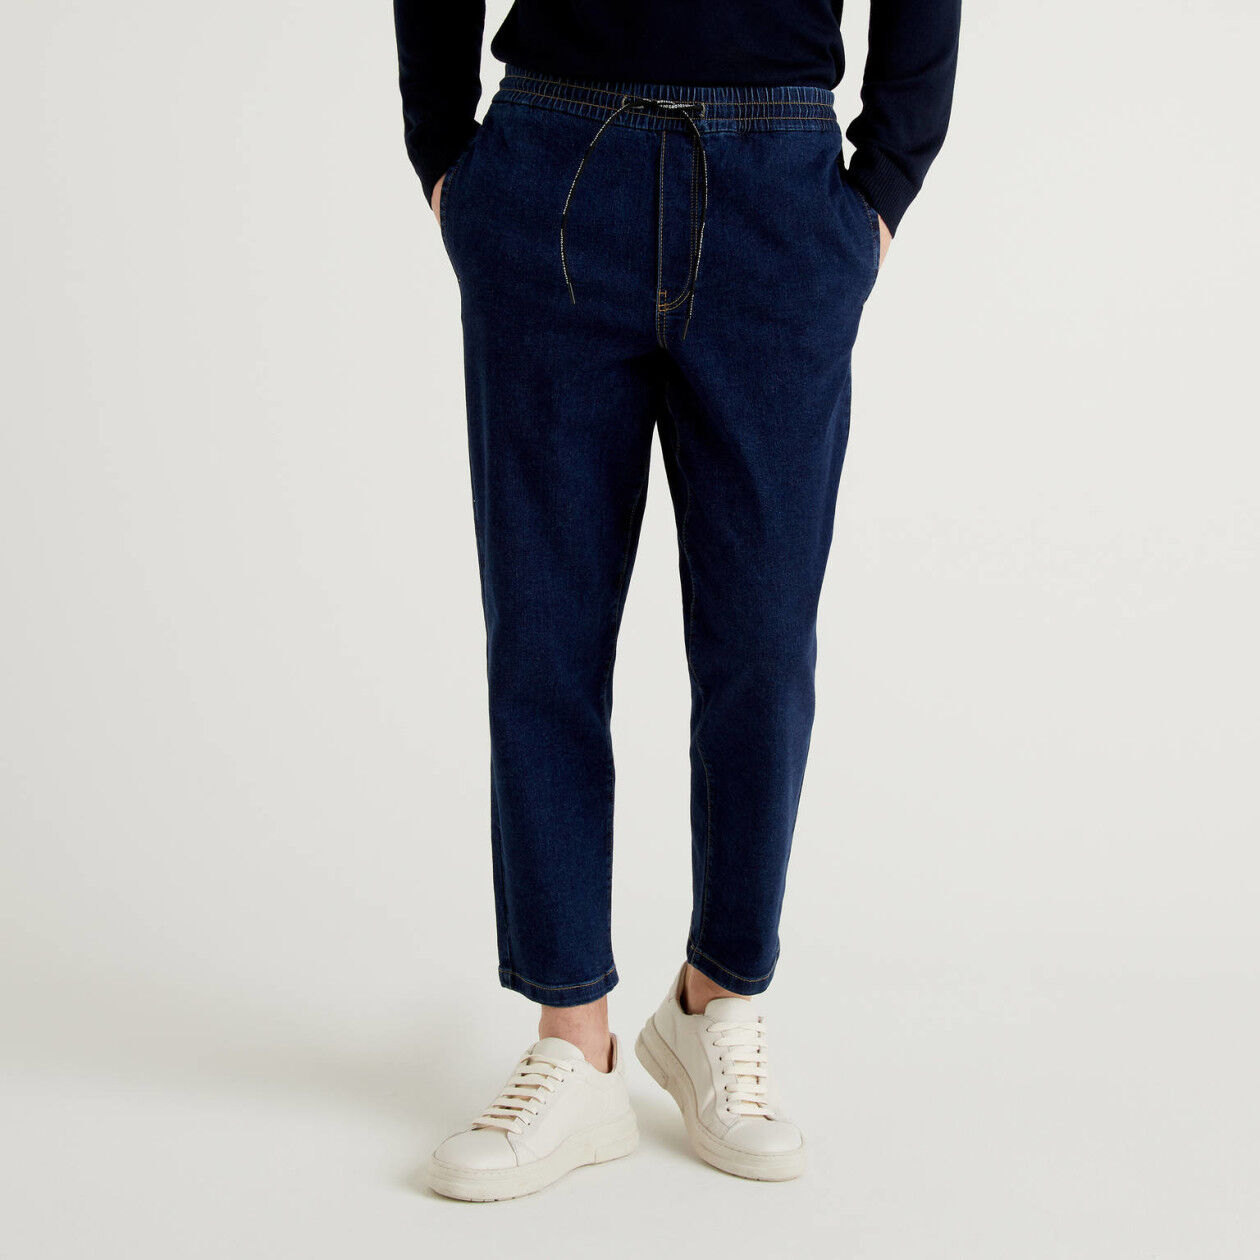 Chino joggers in stretch cotton denim